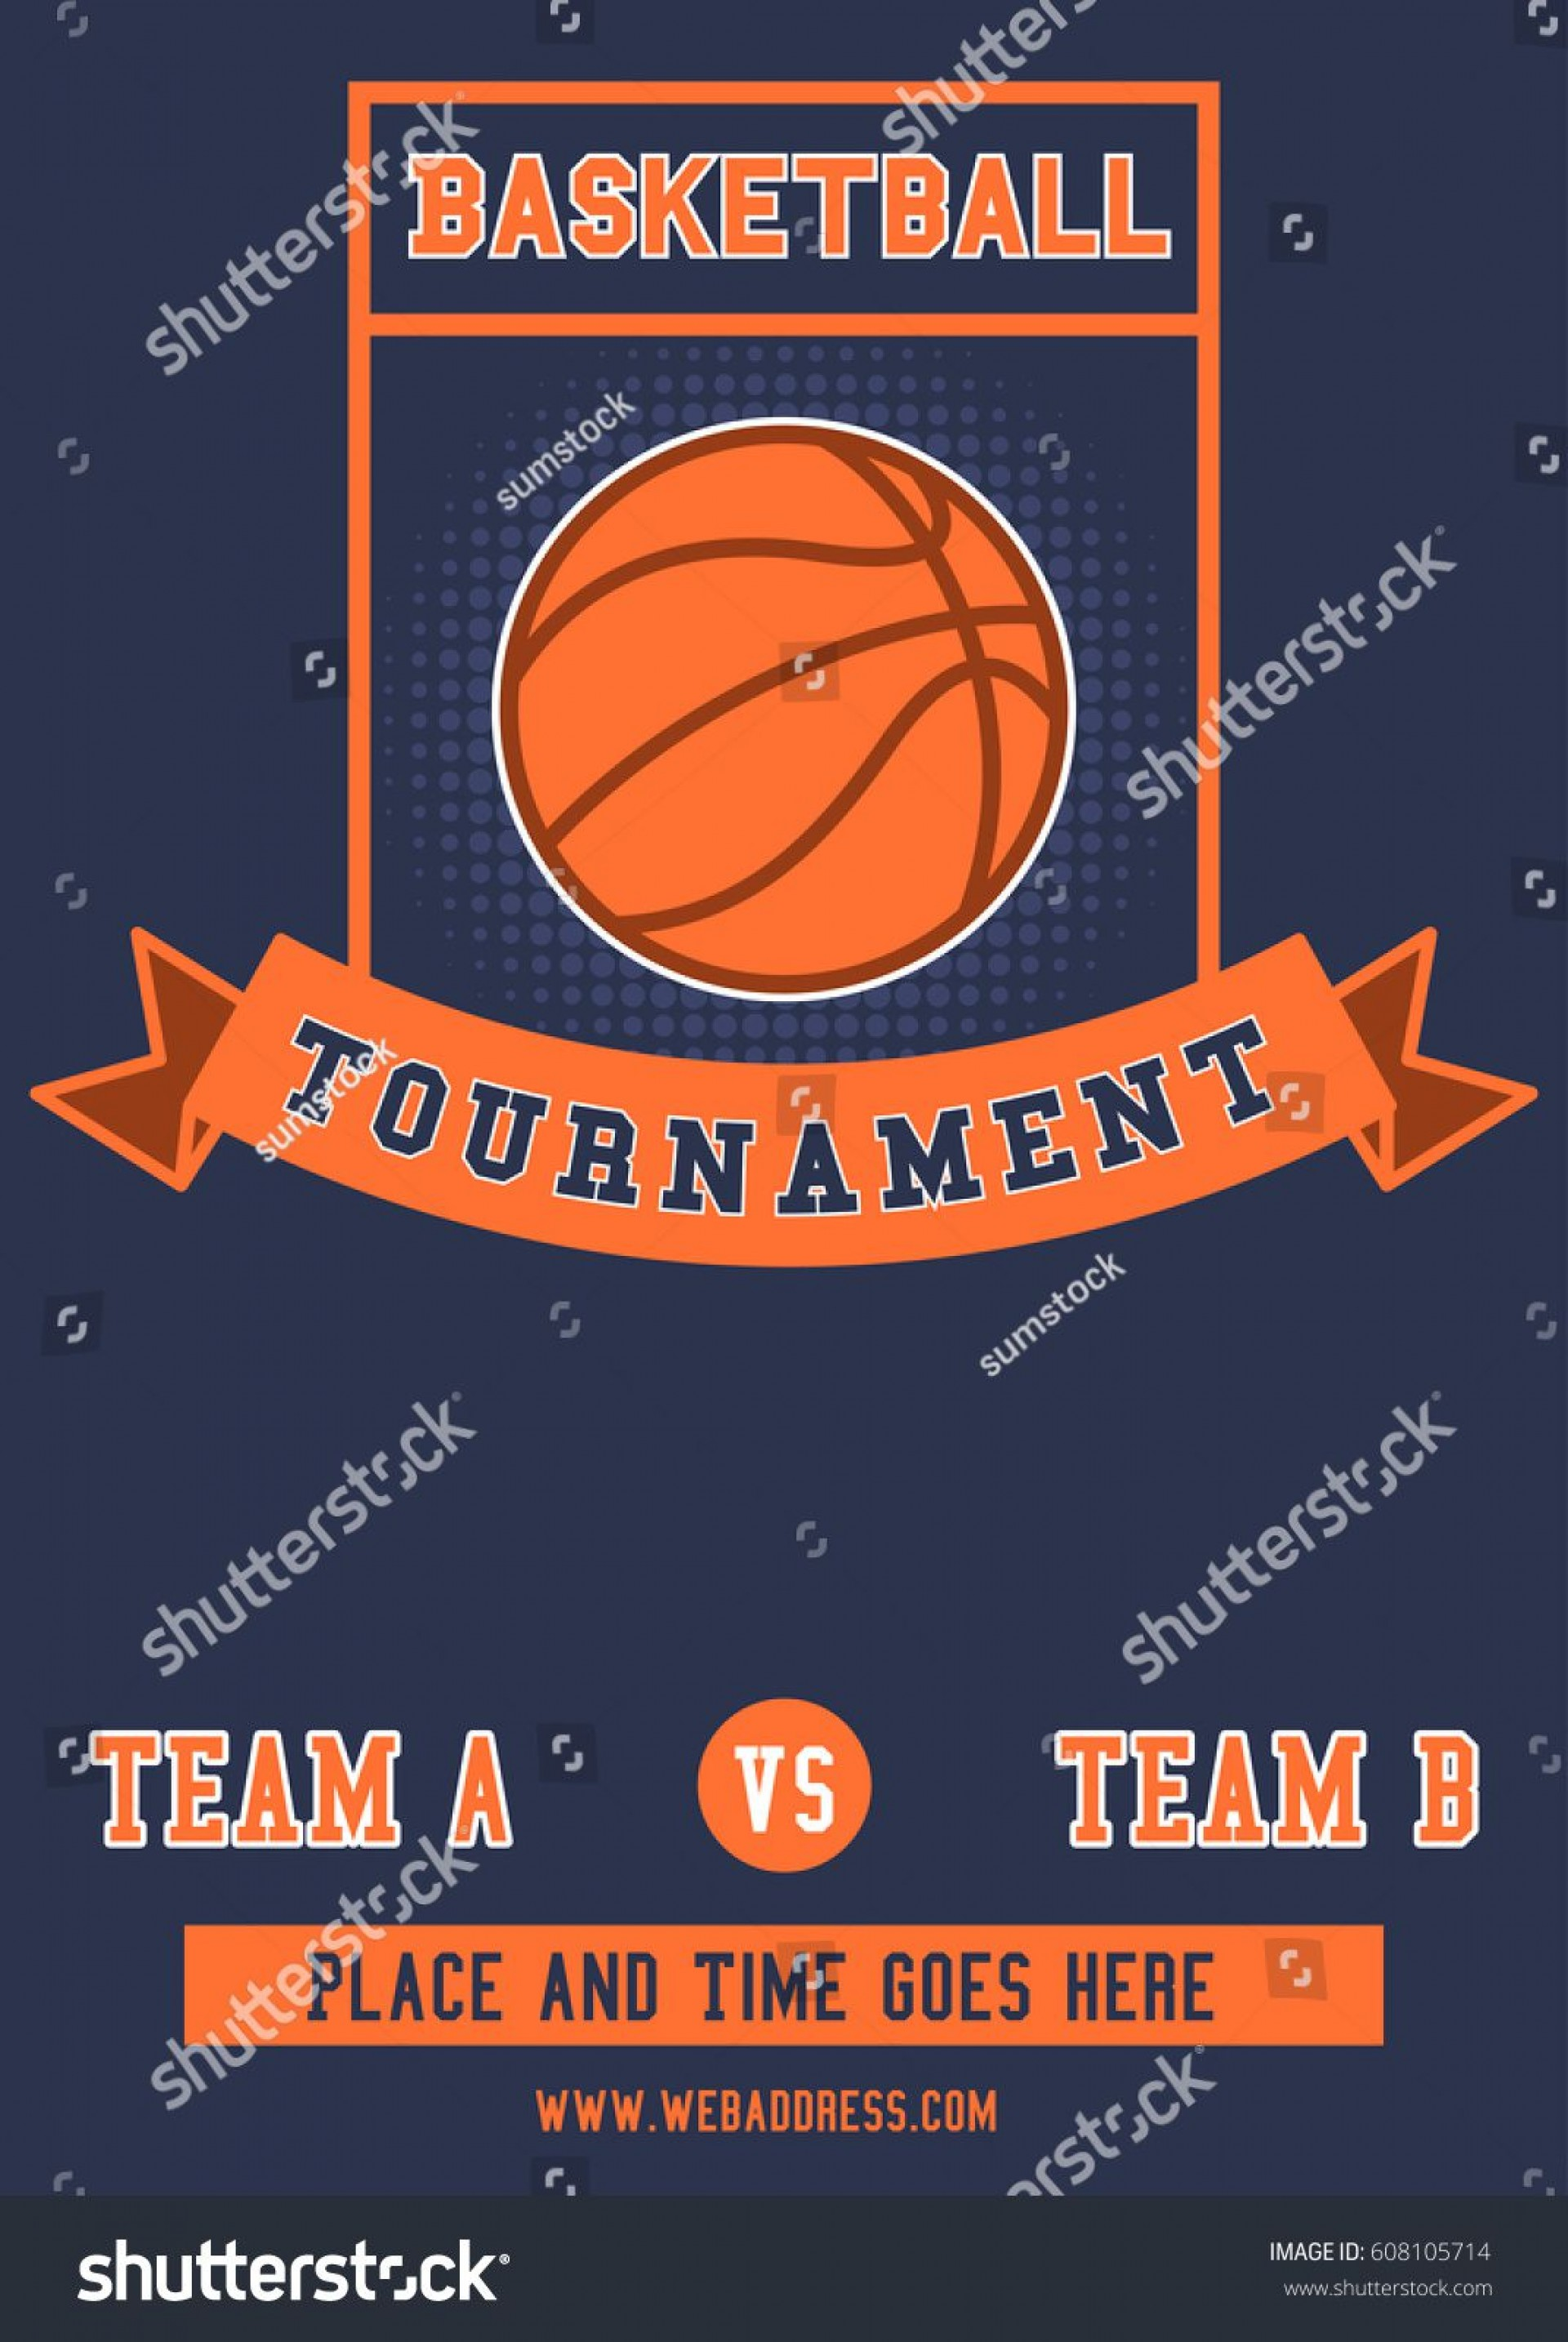 010 Imposing Basketball Tournament Flyer Template High Definition  3 On Free1920